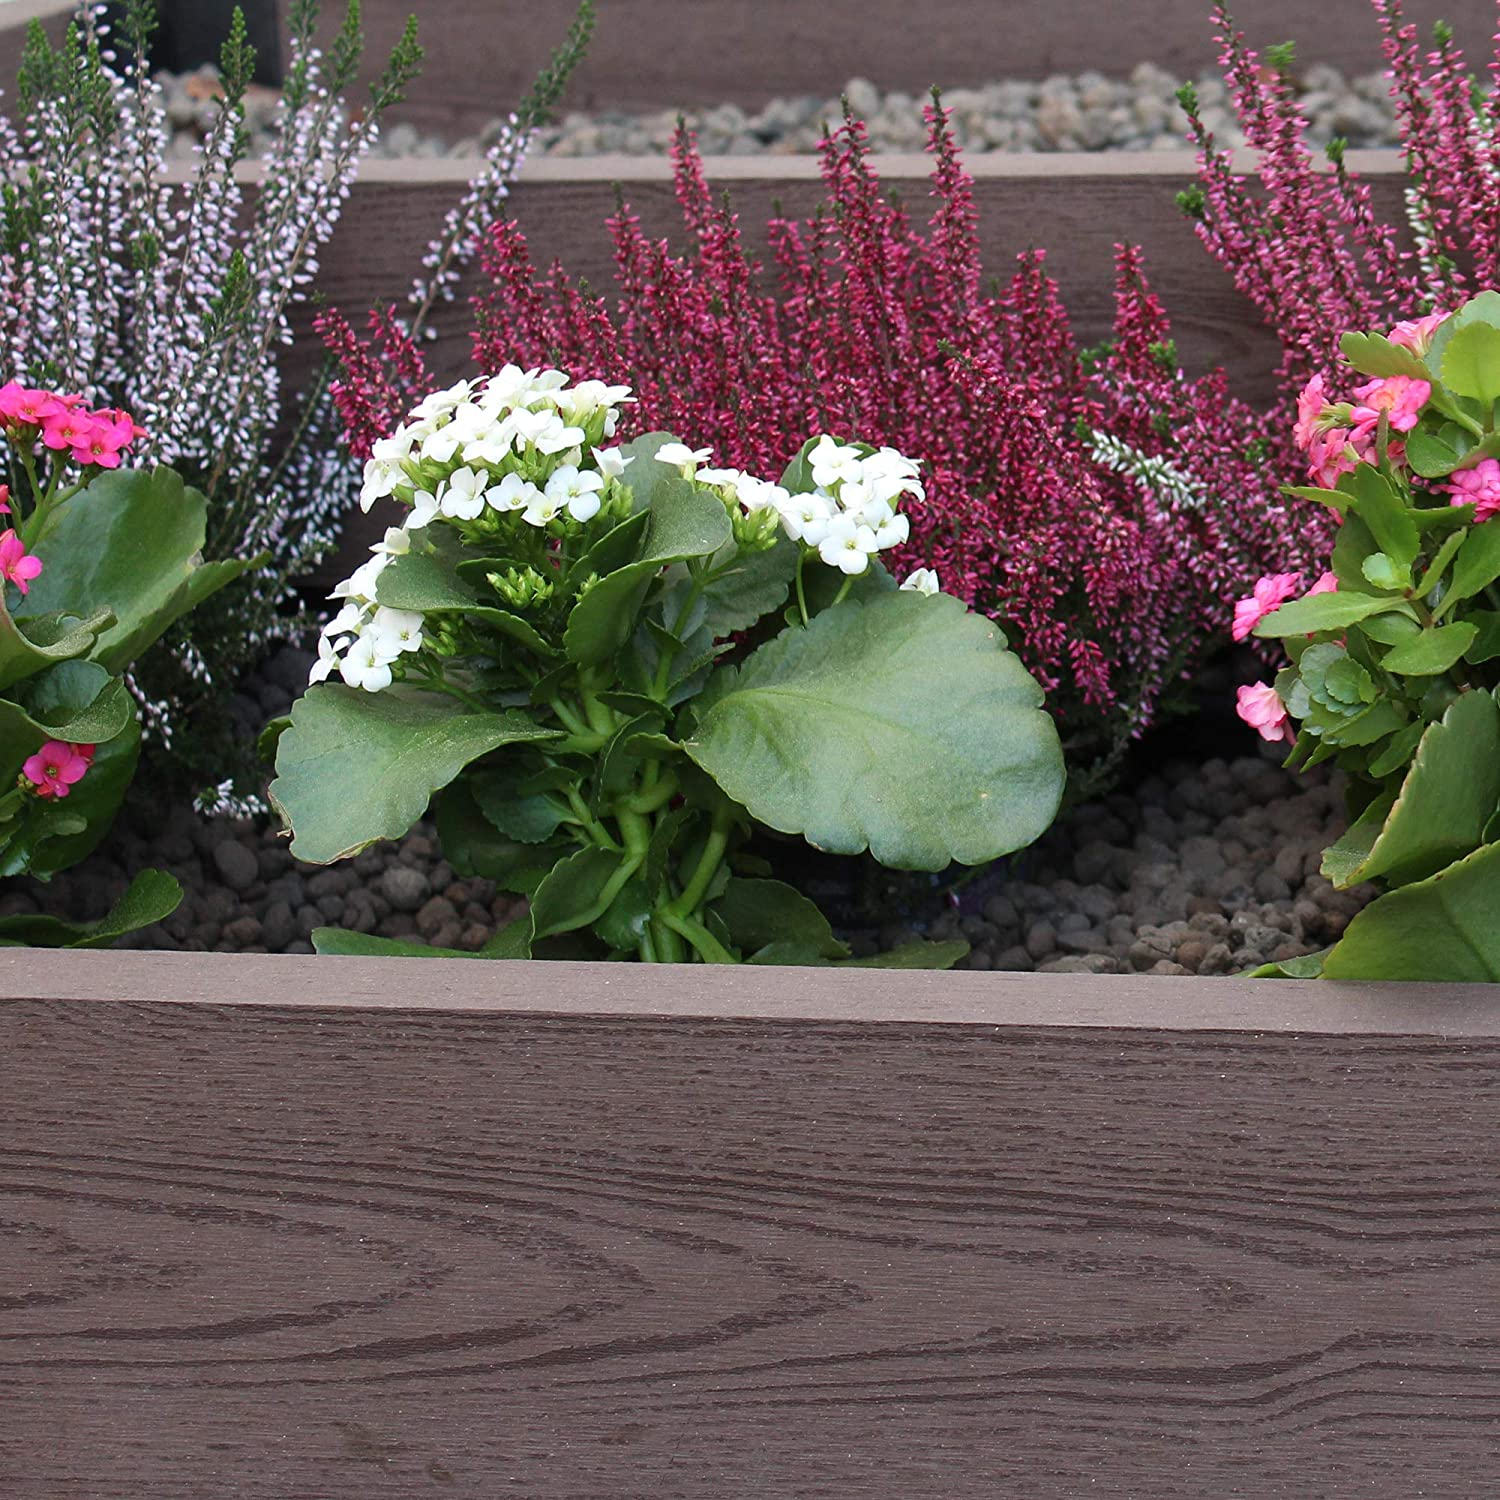 Tenax WPC Flowerbed bordura componibile Decorativa per Giardino Marrone